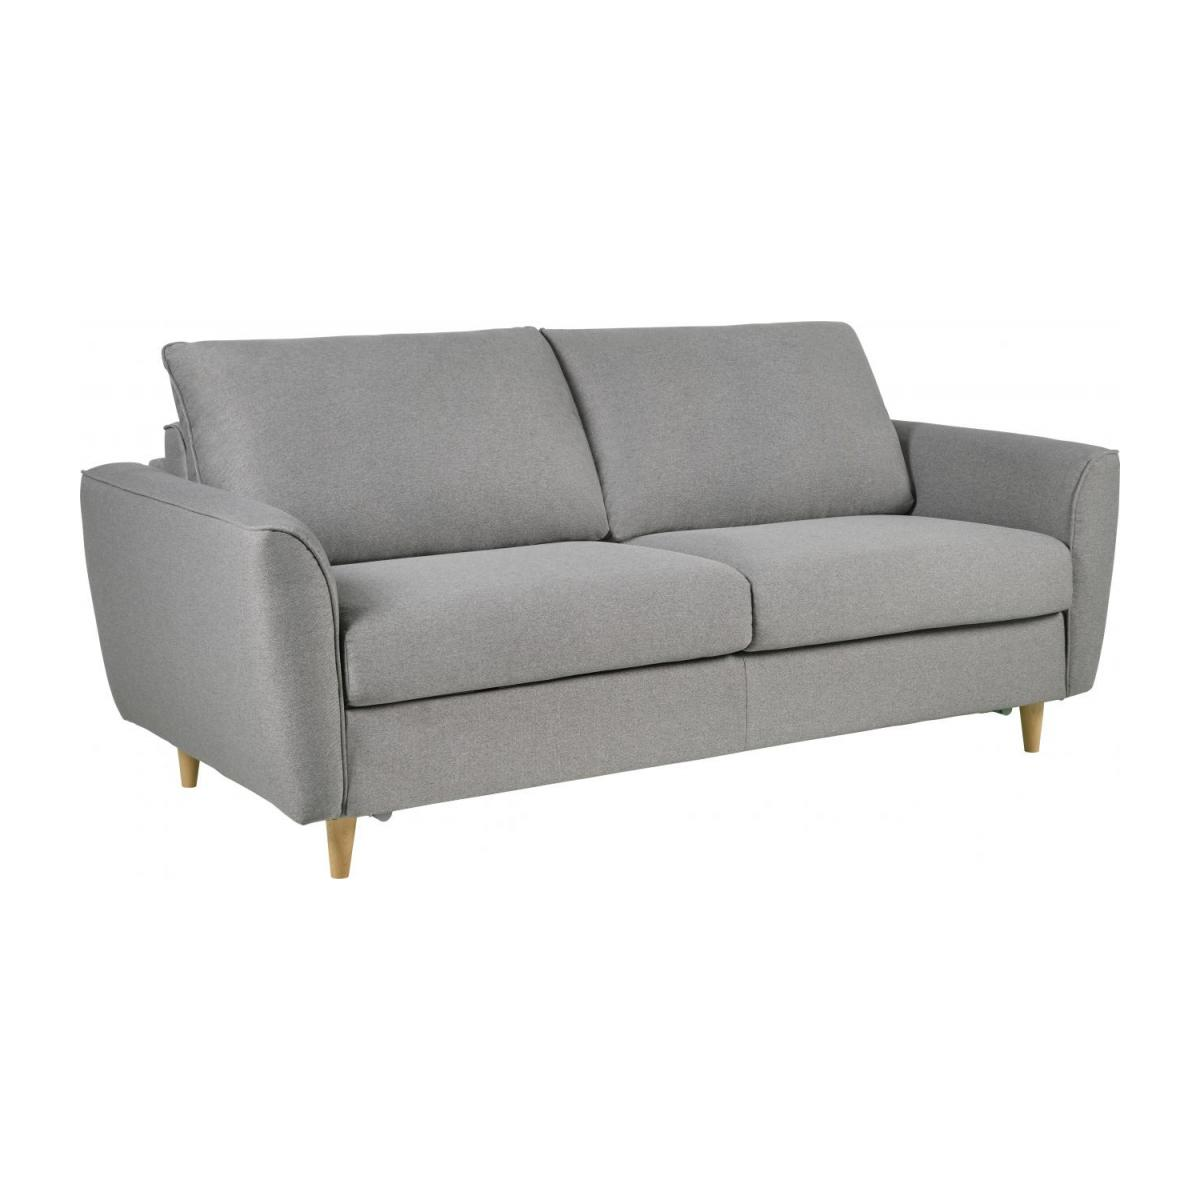 hugo 3 sitzer schlafsofa mit lattenrost habitat. Black Bedroom Furniture Sets. Home Design Ideas